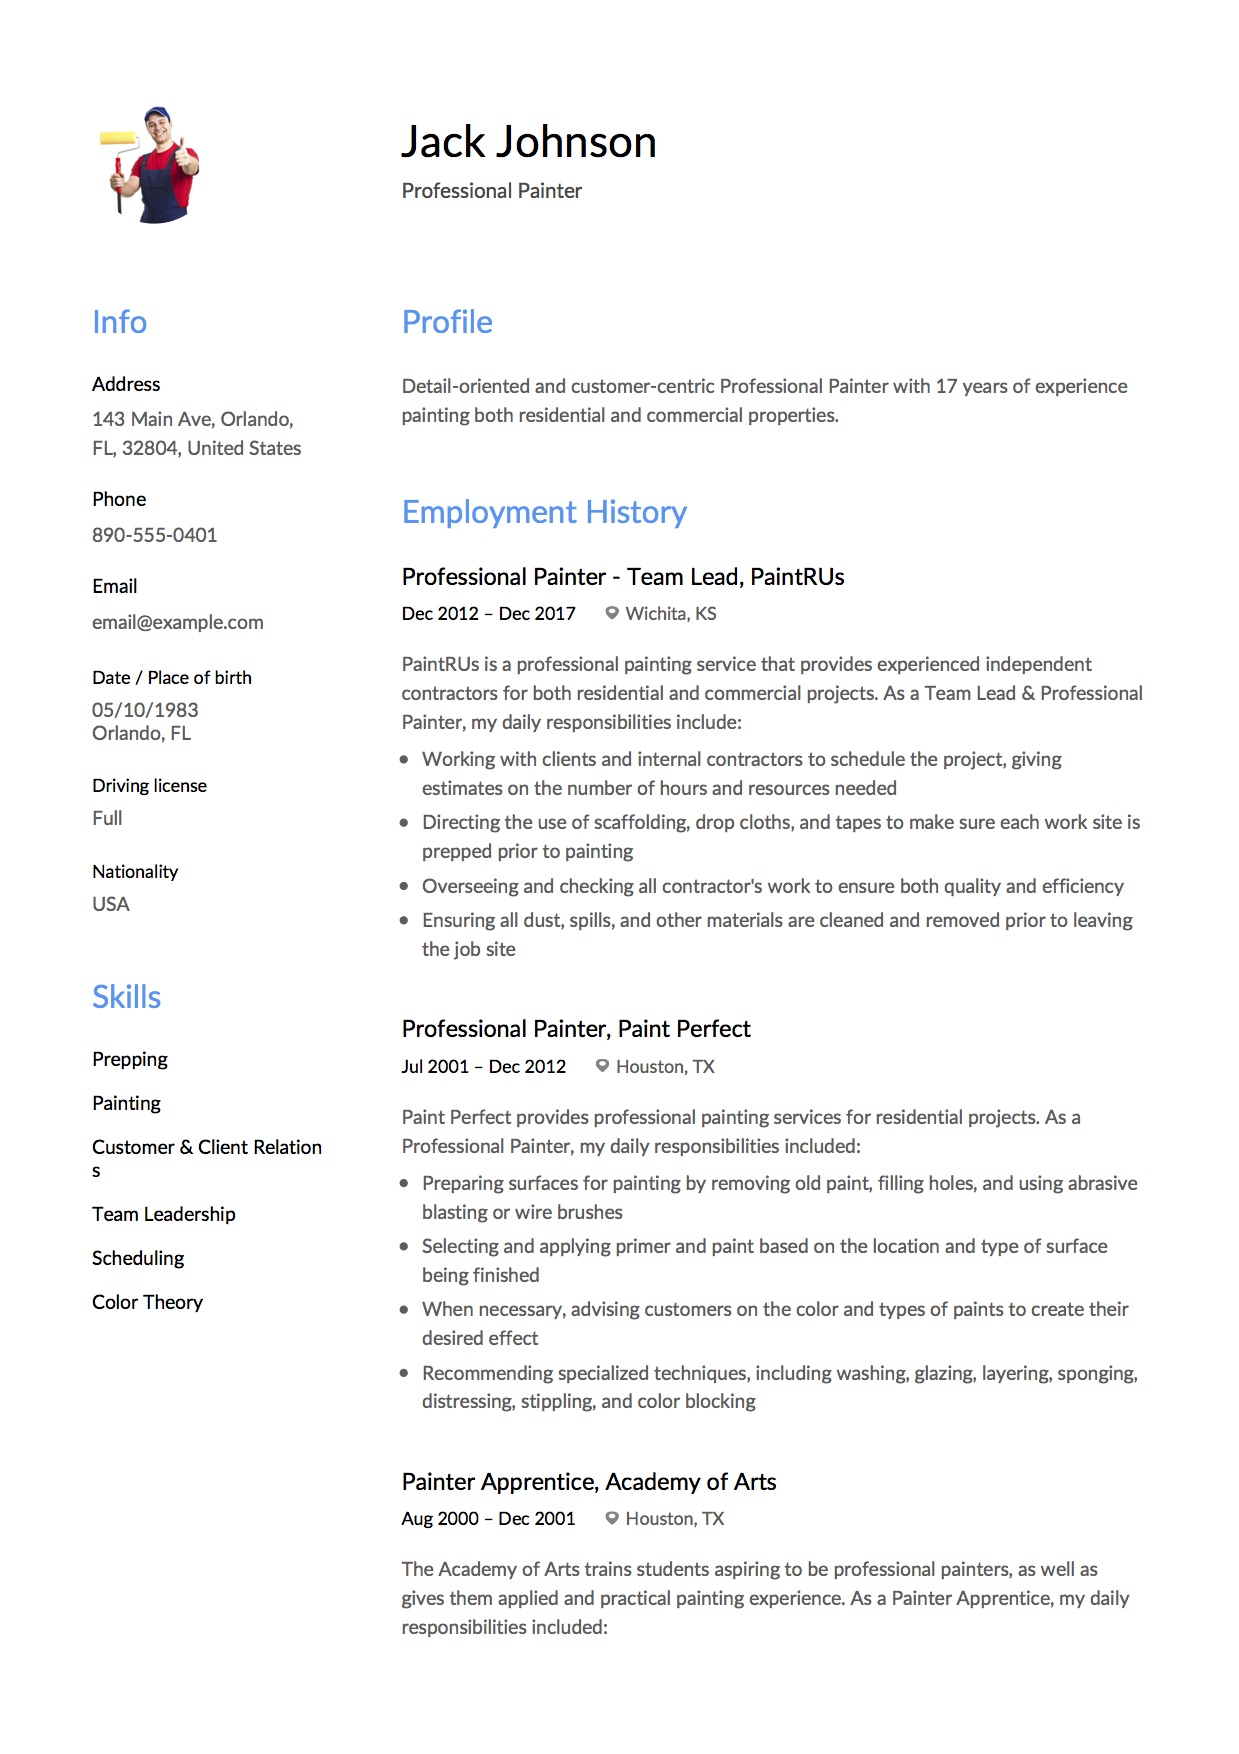 12 Commercial Painter Resume Sample(s) - 2018 (Free Downloads)